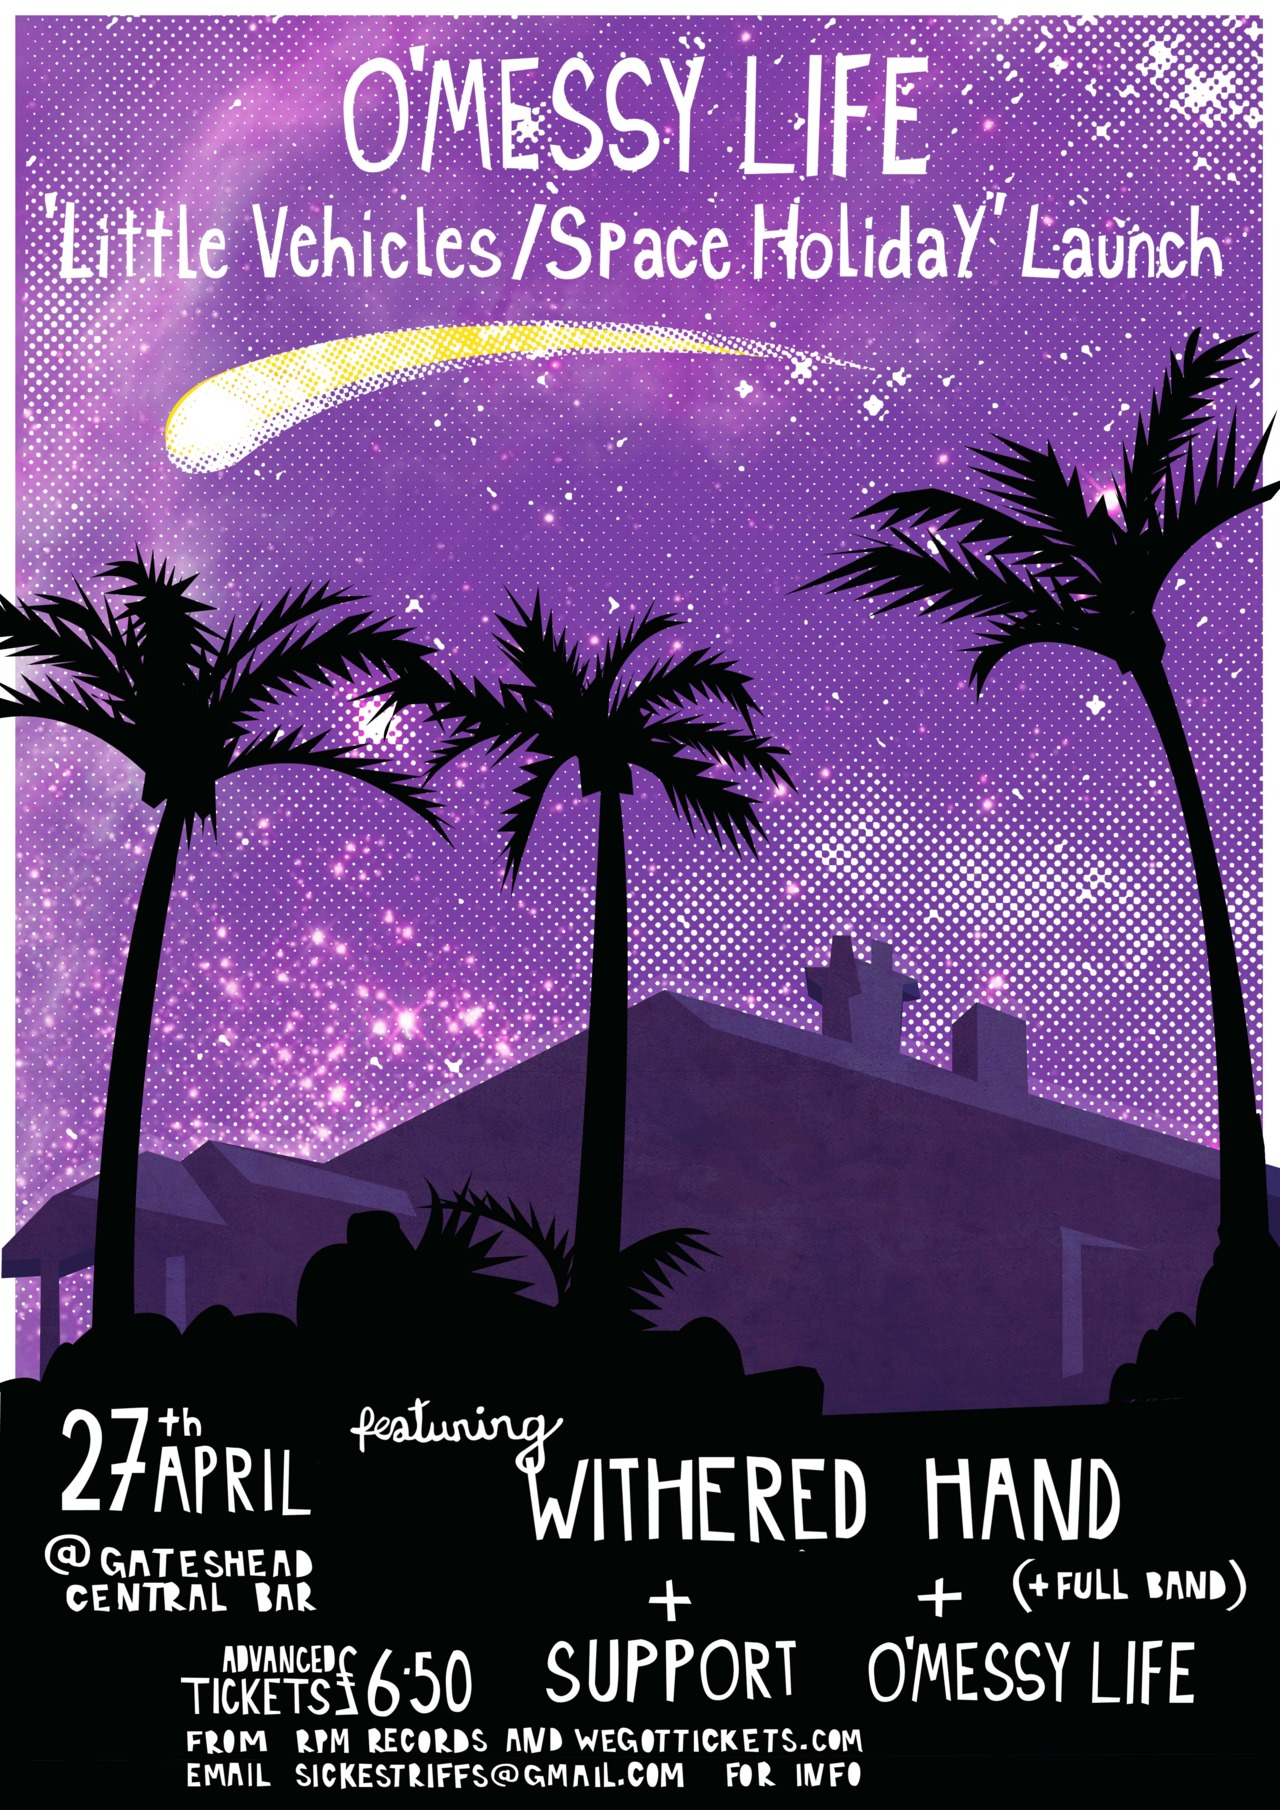 The rather awesome O'Messy Life are having a gig to celebrate the launch of their New Single. You can find out more about the single HERE. I was asked by the band to produce a poster for their double A side single, featuring the songs Little Vehicles and Space Holiday, which will be out on 23rd April 2012. As they're inspired by Heaven's Gate suicide cult I based my colour scheme around the fact that the victims were covered in a purple cloth and dressed in black. I've also included the silhouette of the mansion where the 39 members of the group had committed suicide, and the Hale-Bopp comet which was the trigger for the mass suicide.